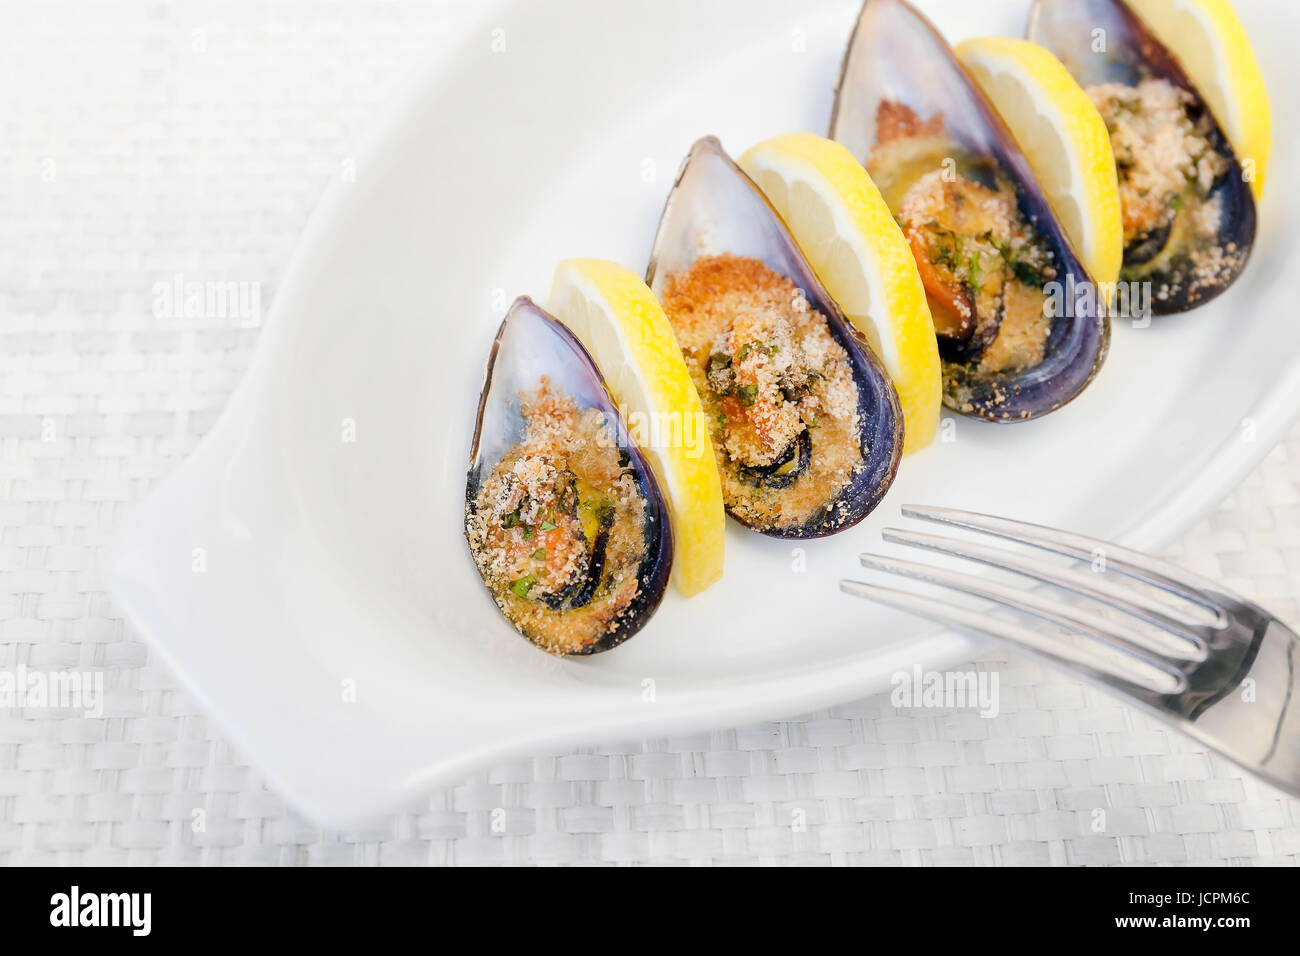 Grilled mussels cooked in the oven, accompanied by slices of lemon, grated pan and parsley. Mussels cooked on white - Stock Image